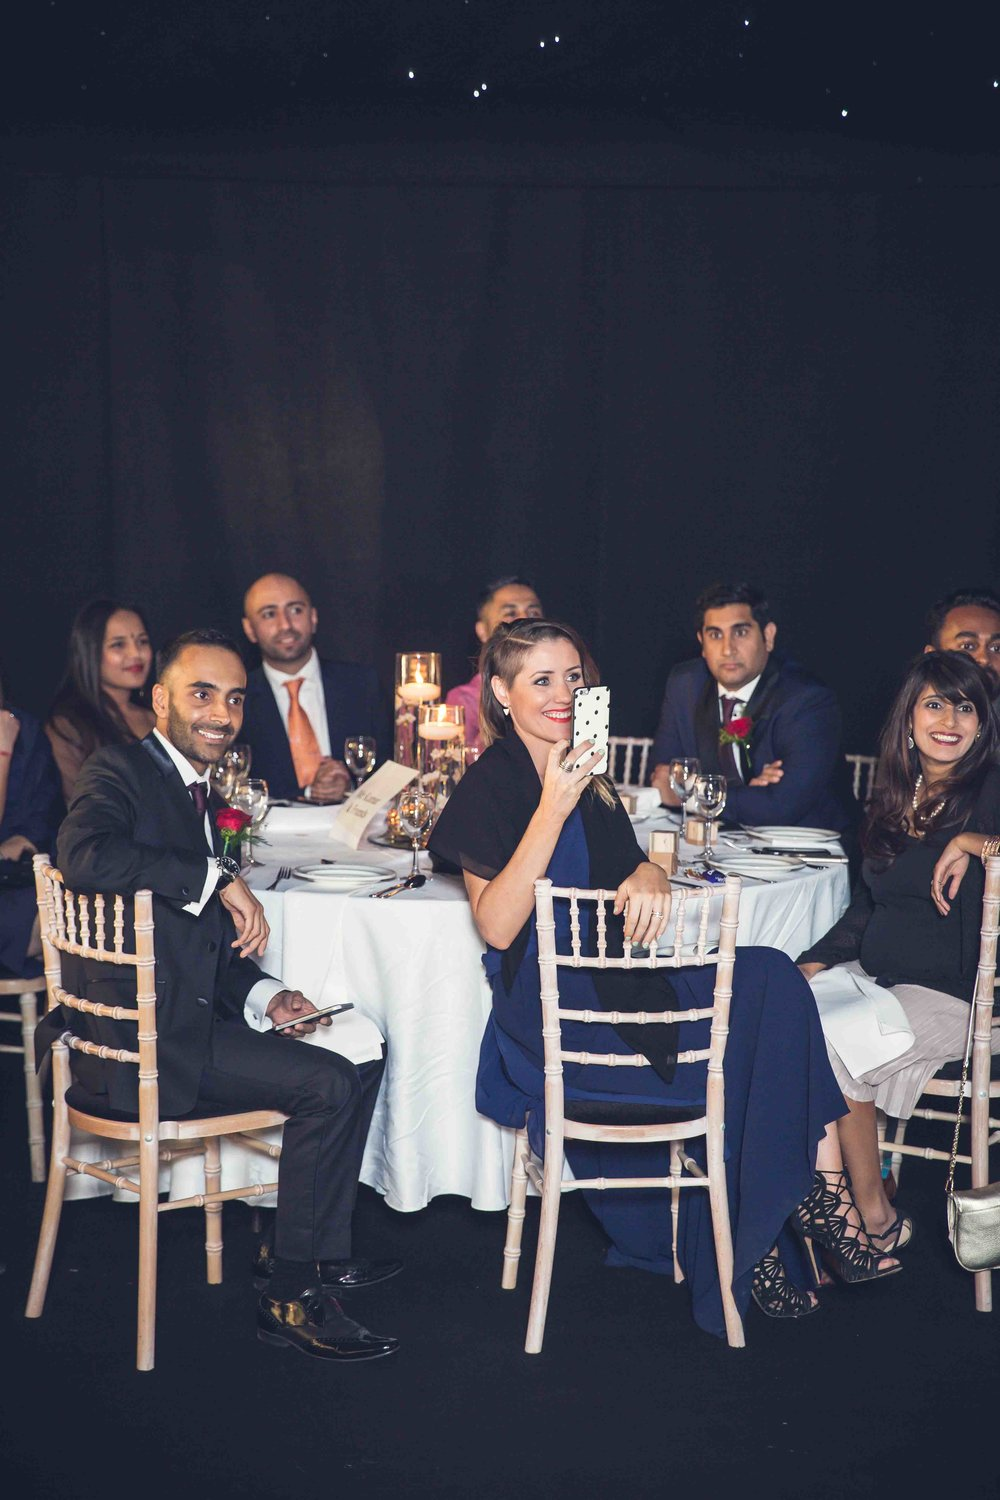 Asian Wedding Photographer Opu Sultan Photography Lyme Park Scotland Edinburgh Glasgow London Manchester Liverpool Birmingham Wedding Photos prewed shoot Azman & Saira Blog-106.jpg